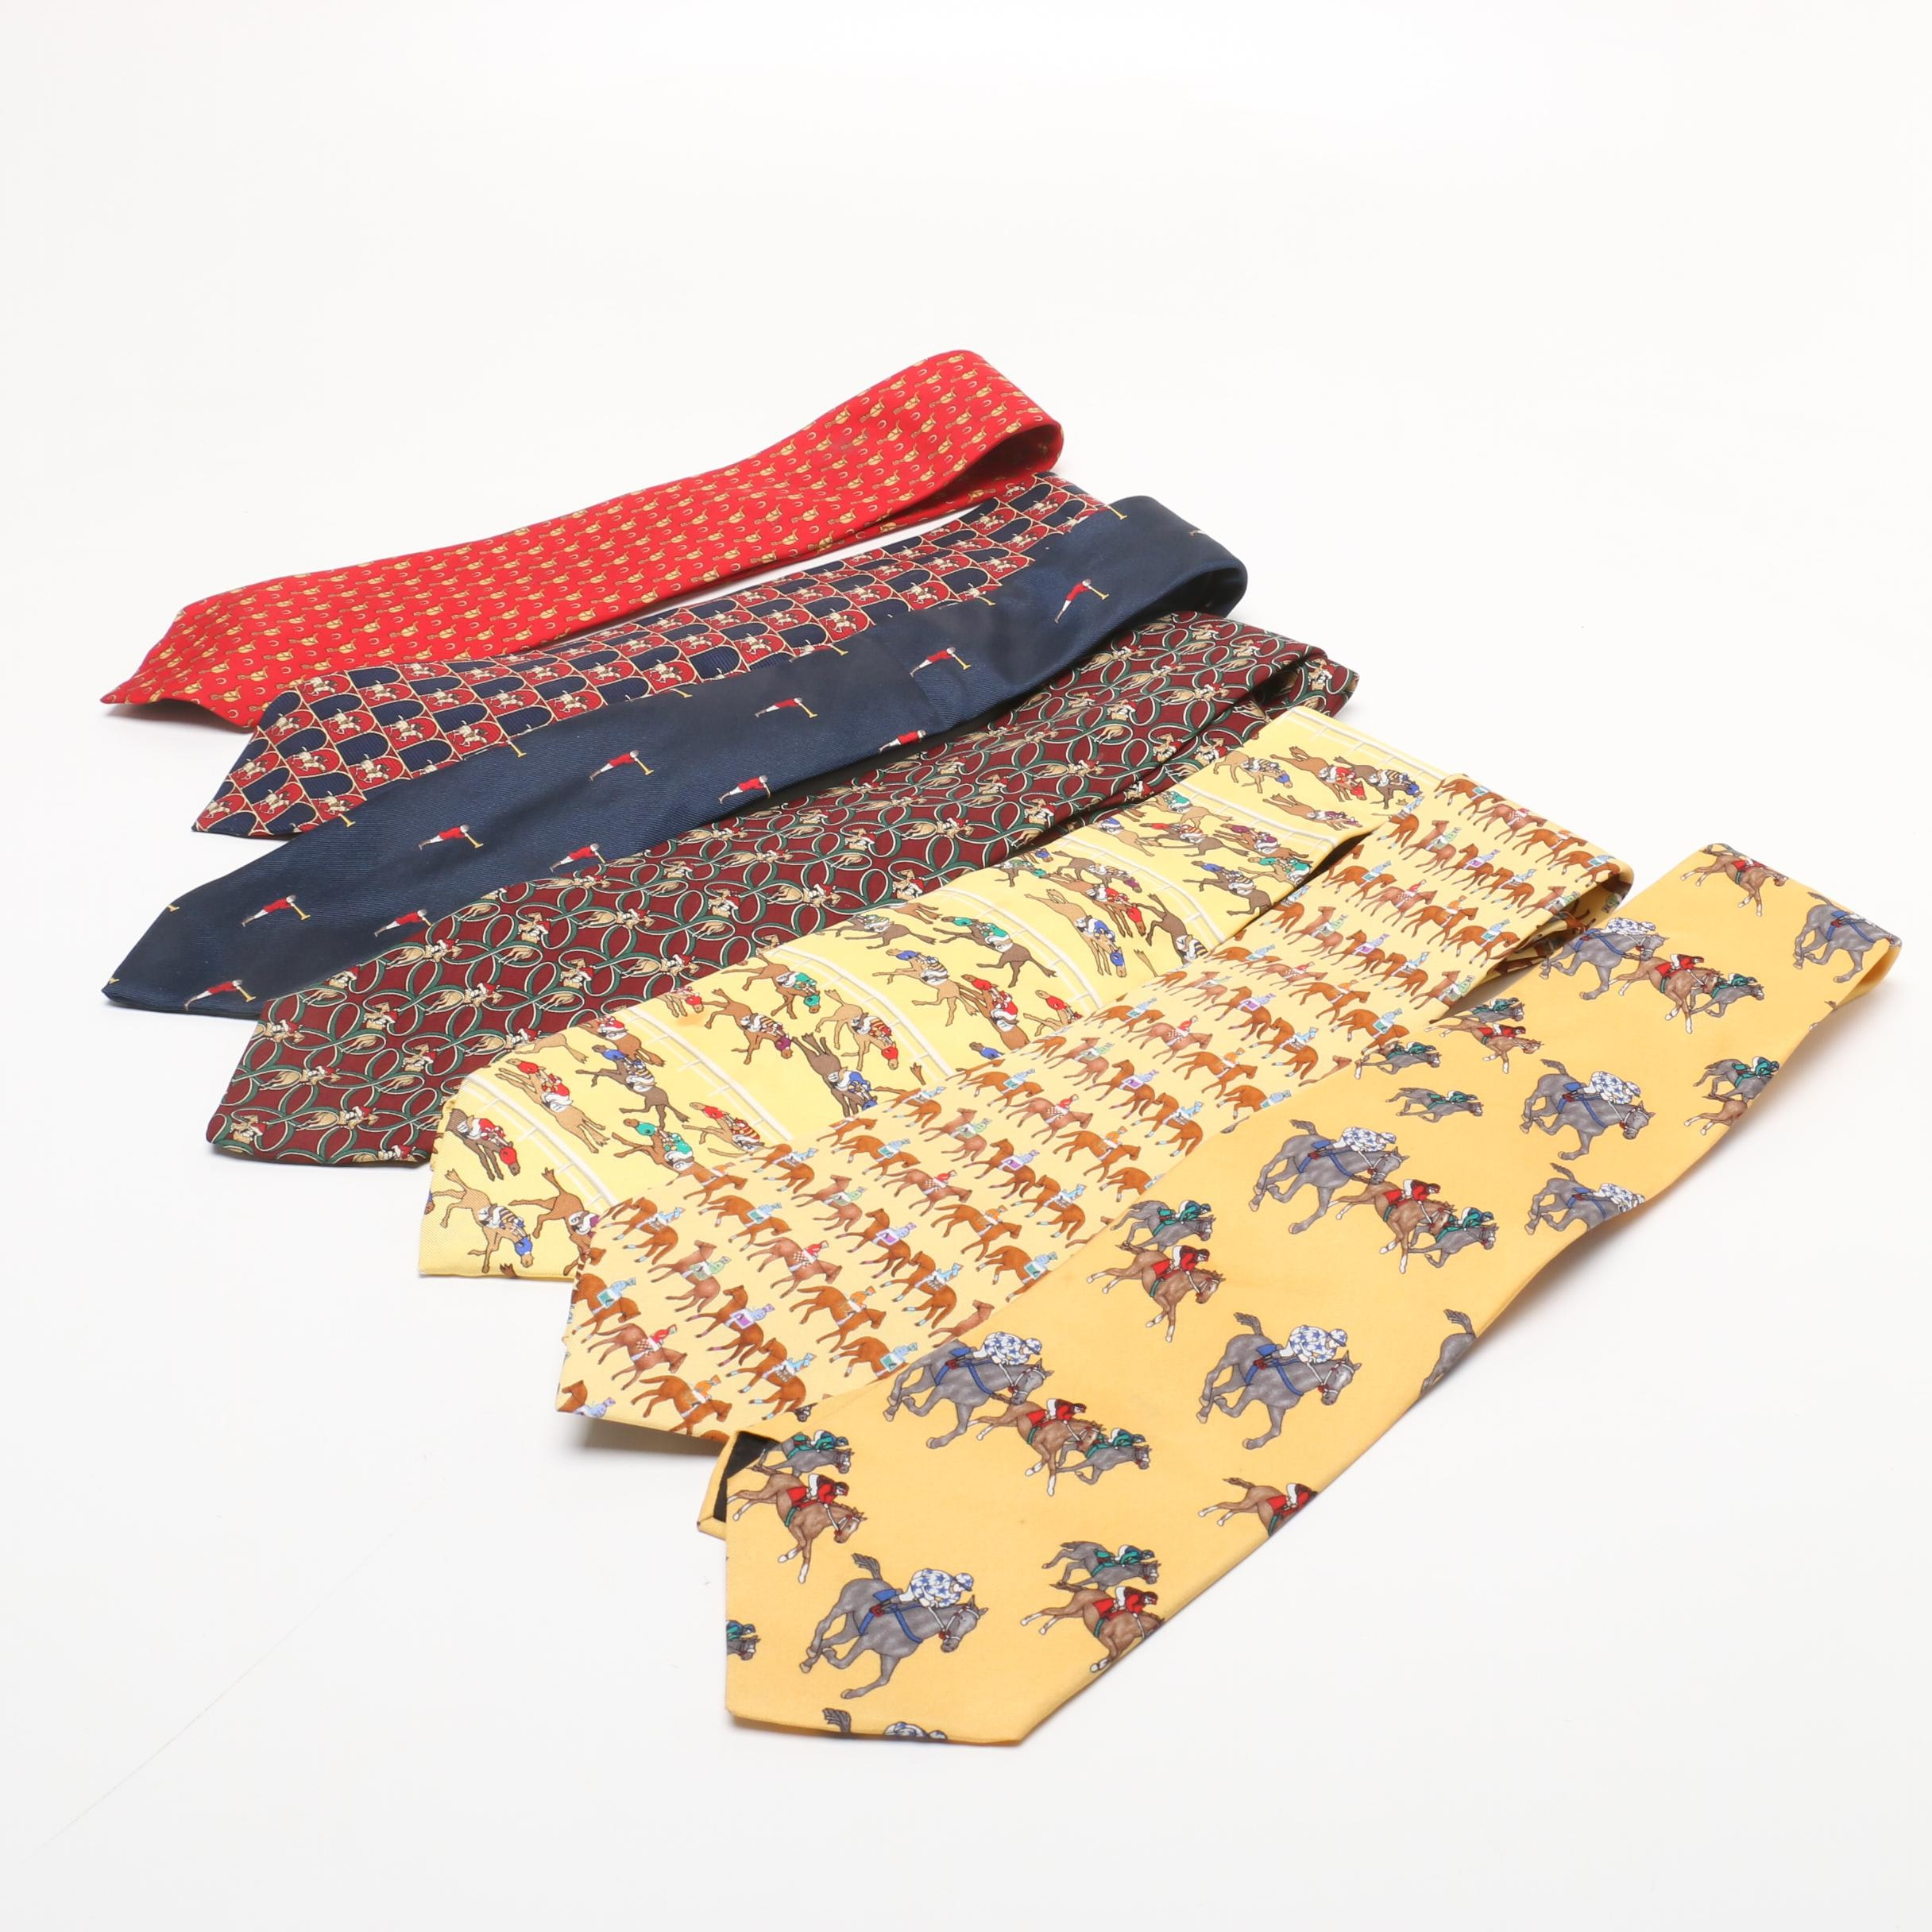 Men's Neckties with Race Horse Patterns Including Brooks Brothers and Alynn